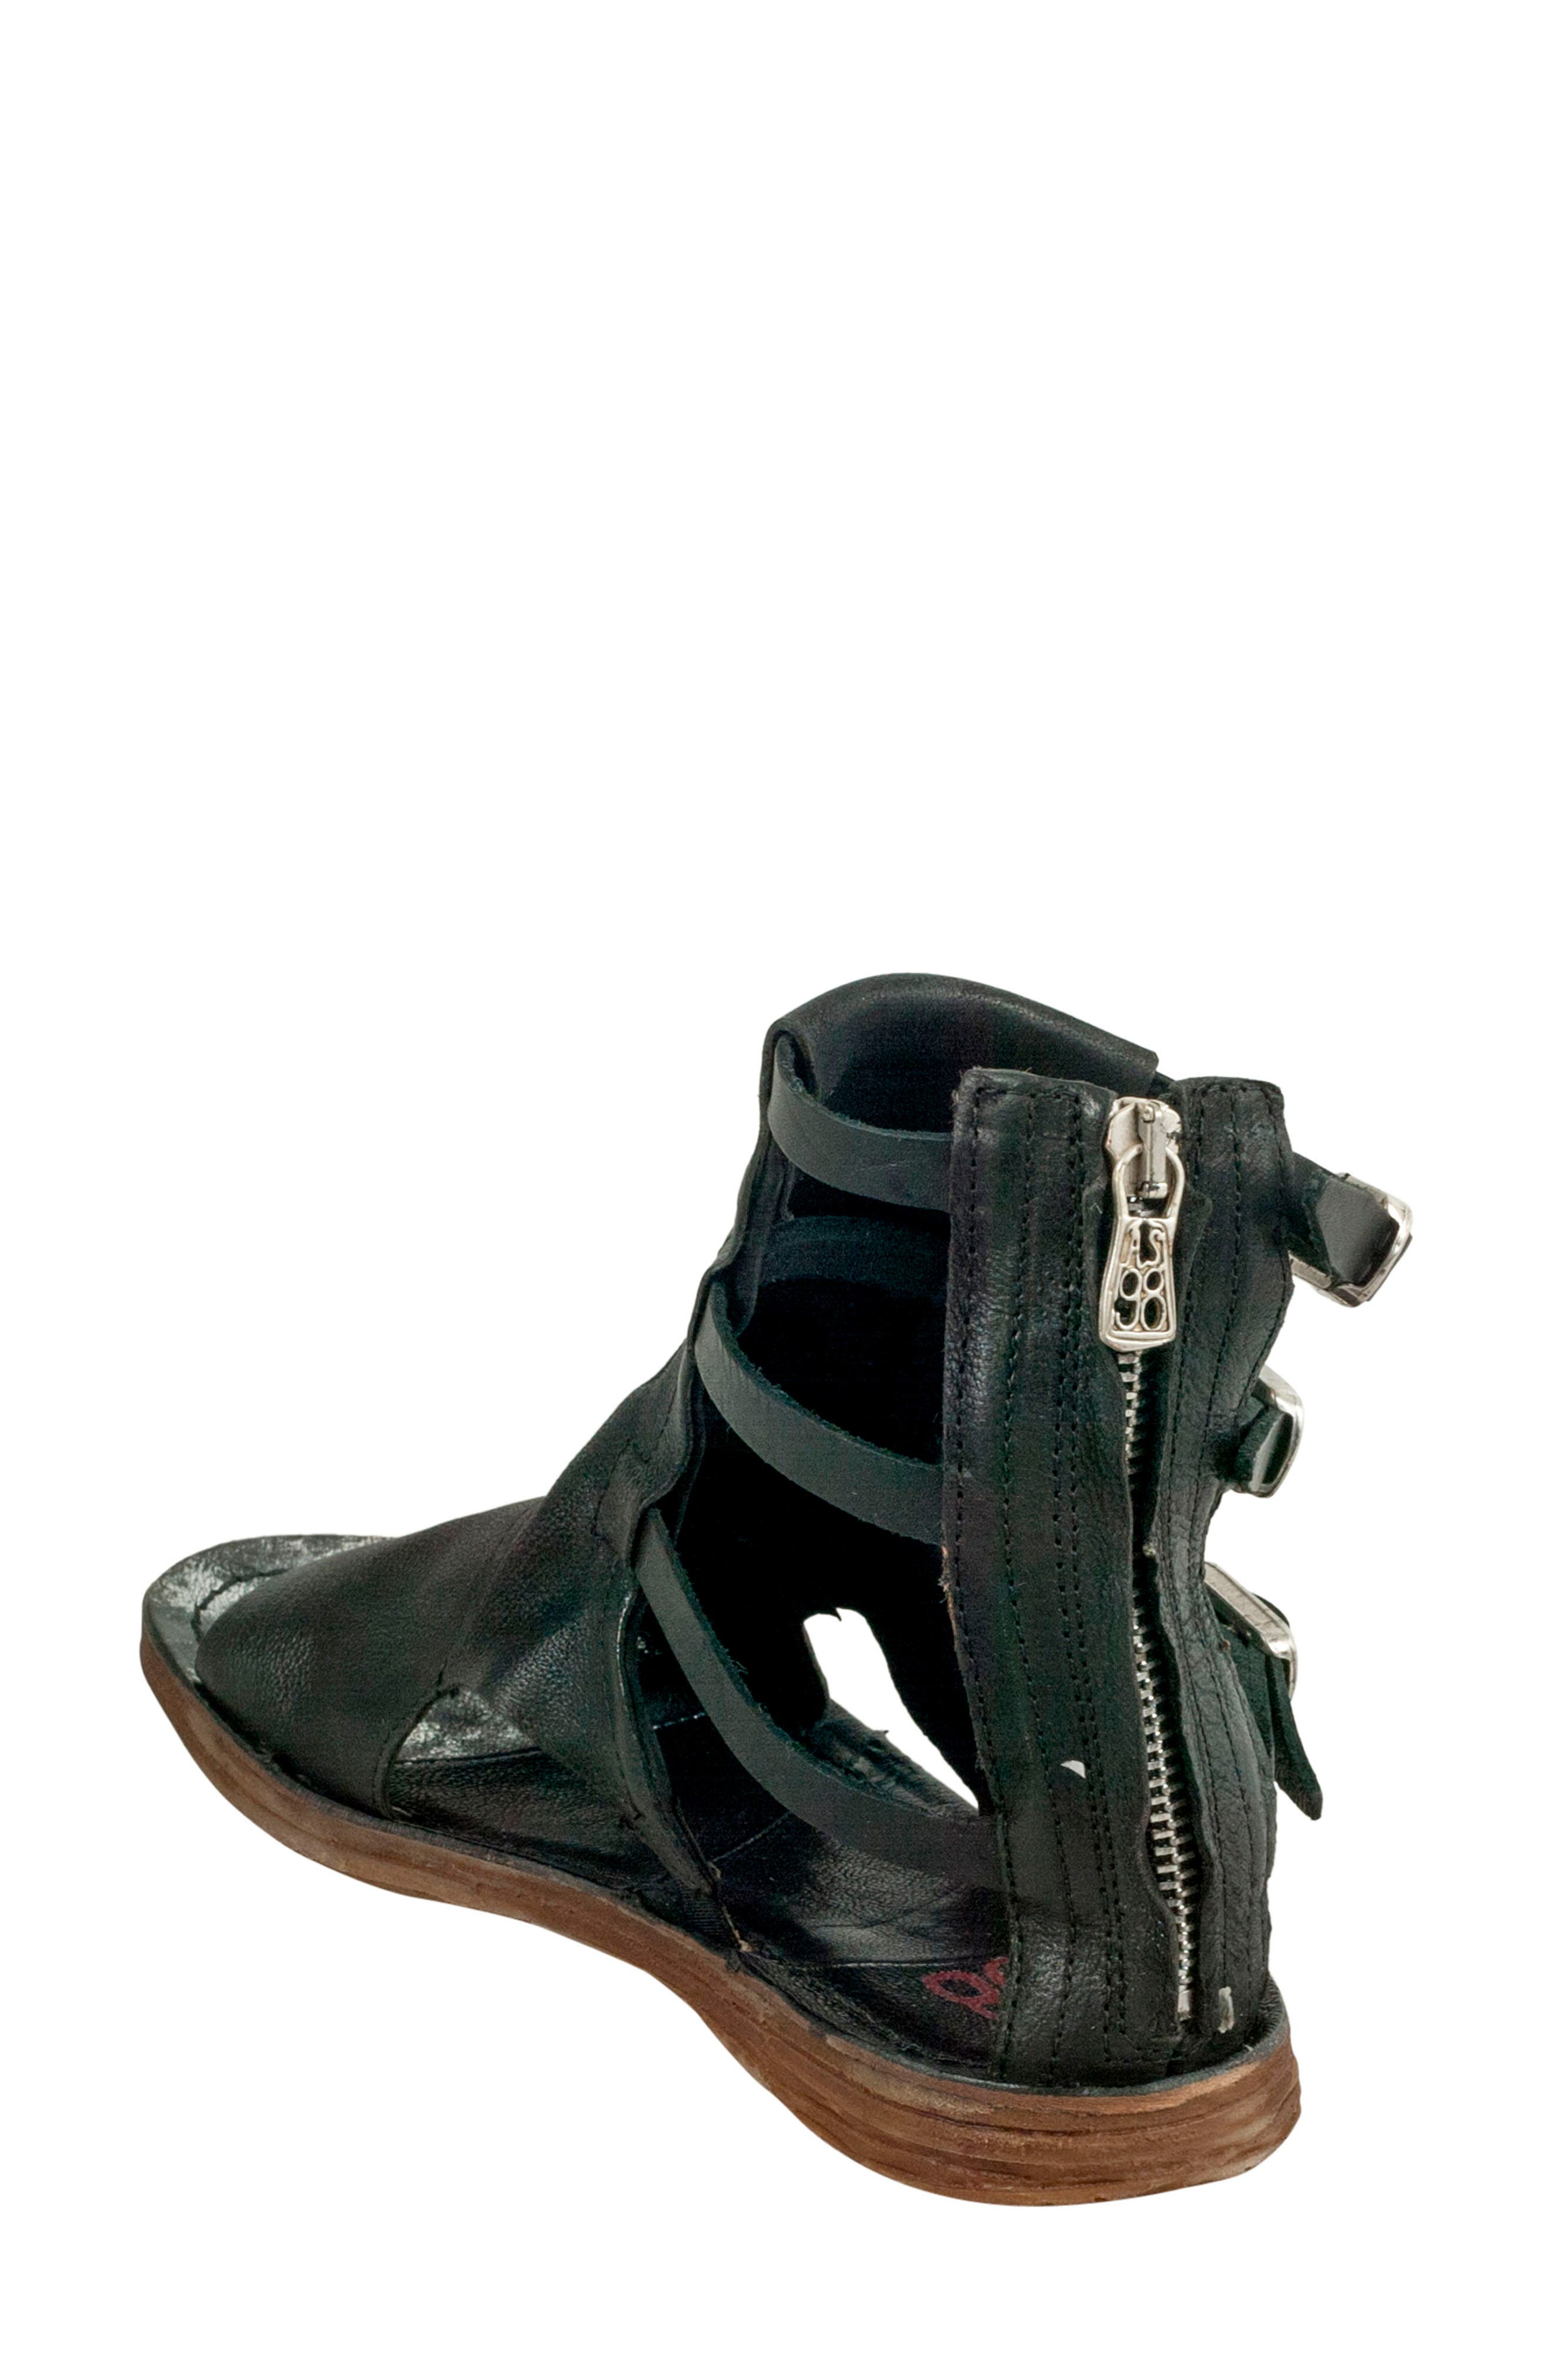 Ryde Sandal,                             Alternate thumbnail 2, color,                             BLACK LEATHER